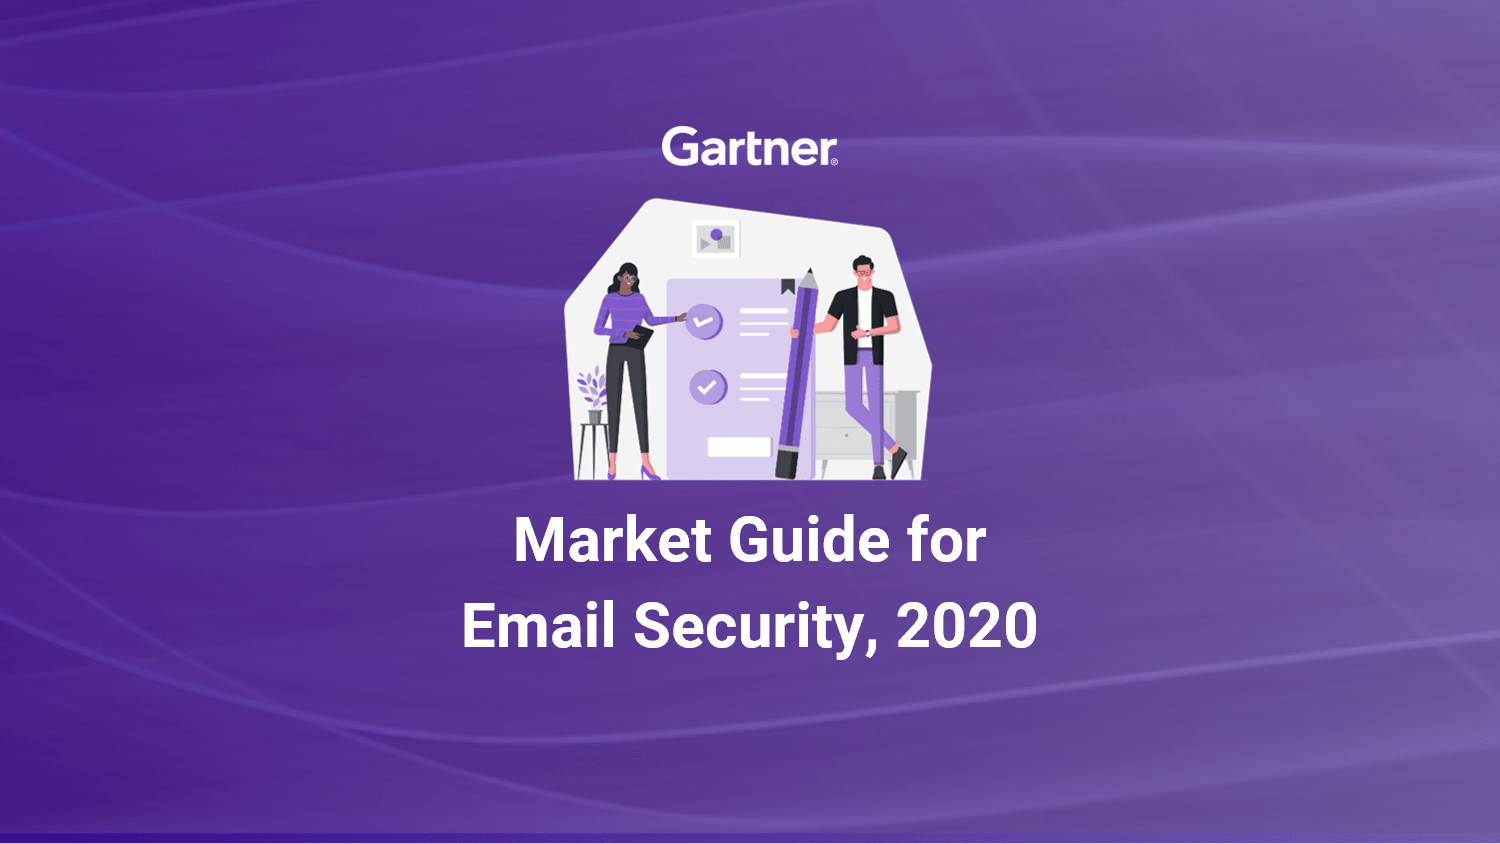 Gartner Releases 2020 Market Guide for Email Security